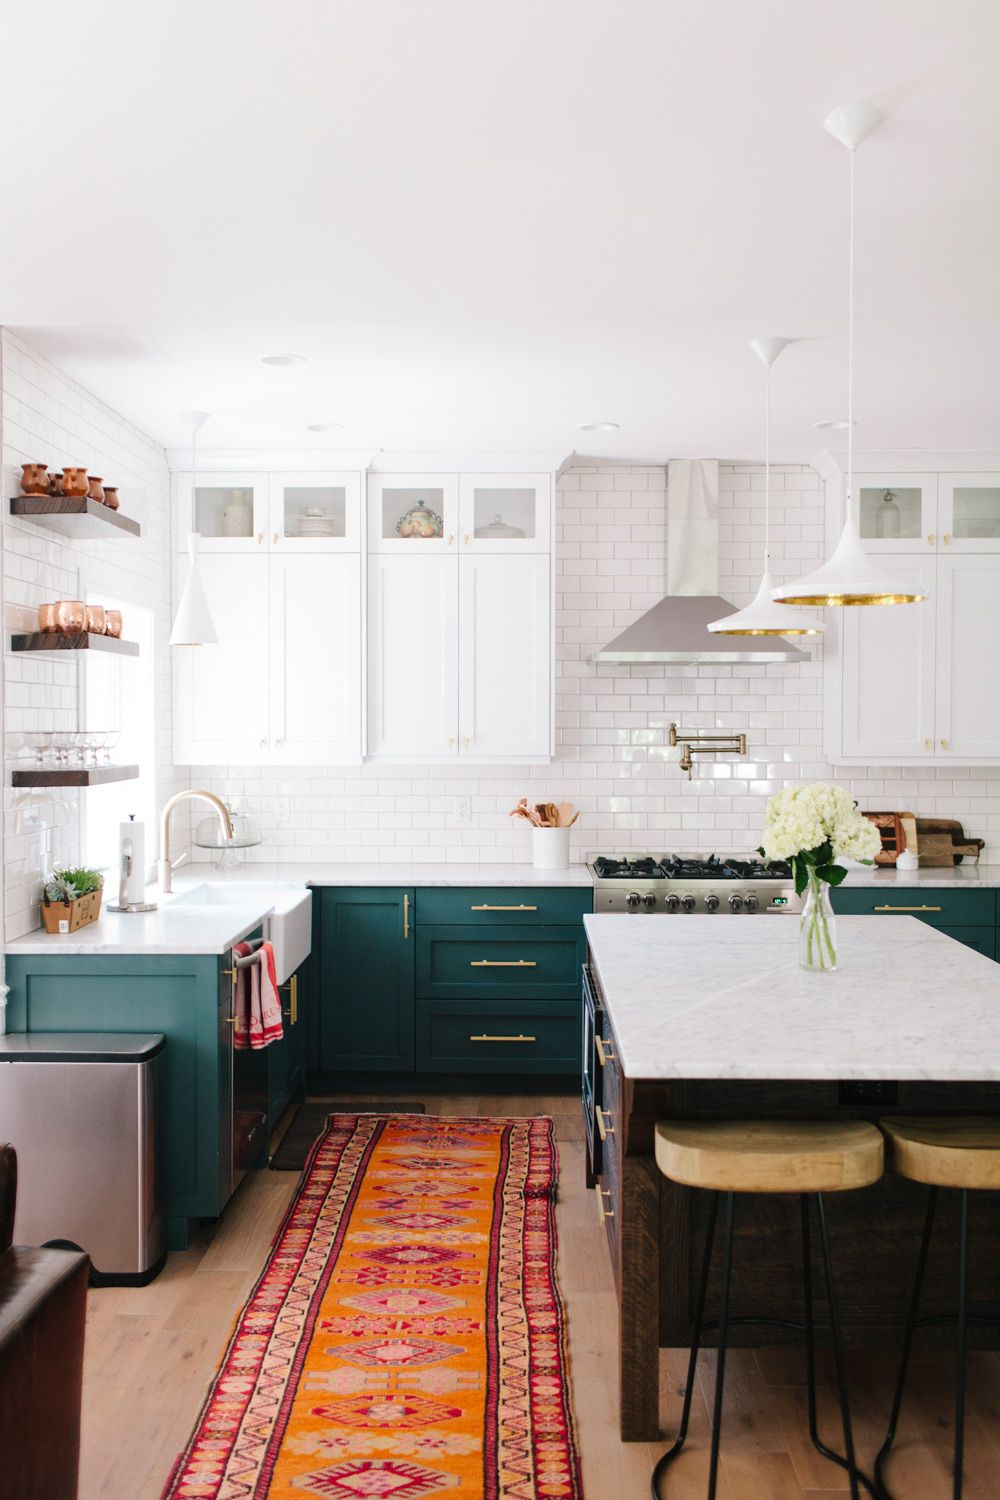 Pin By Haley Babula On For The Home Green Kitchen Cabinets